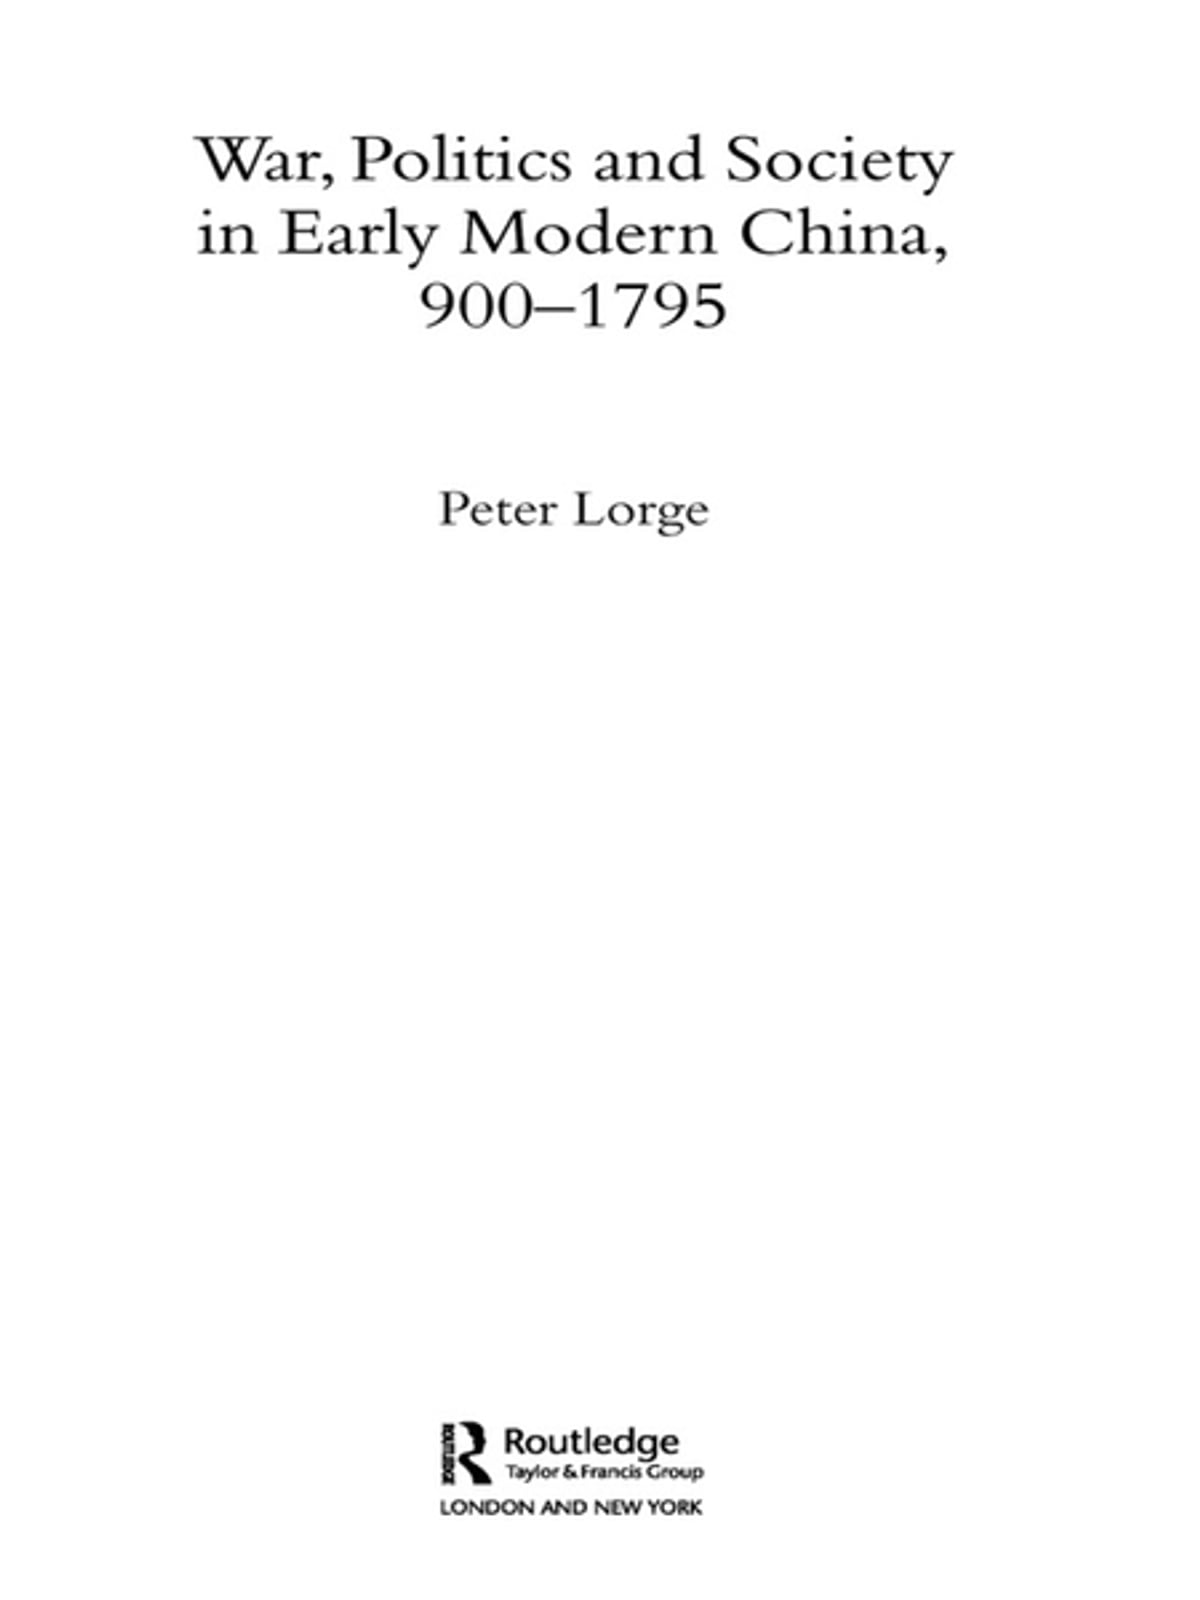 War politics and society in early modern china 9001795 ebook by war politics and society in early modern china 9001795 ebook by peter lorge 9781134372850 rakuten kobo fandeluxe Choice Image